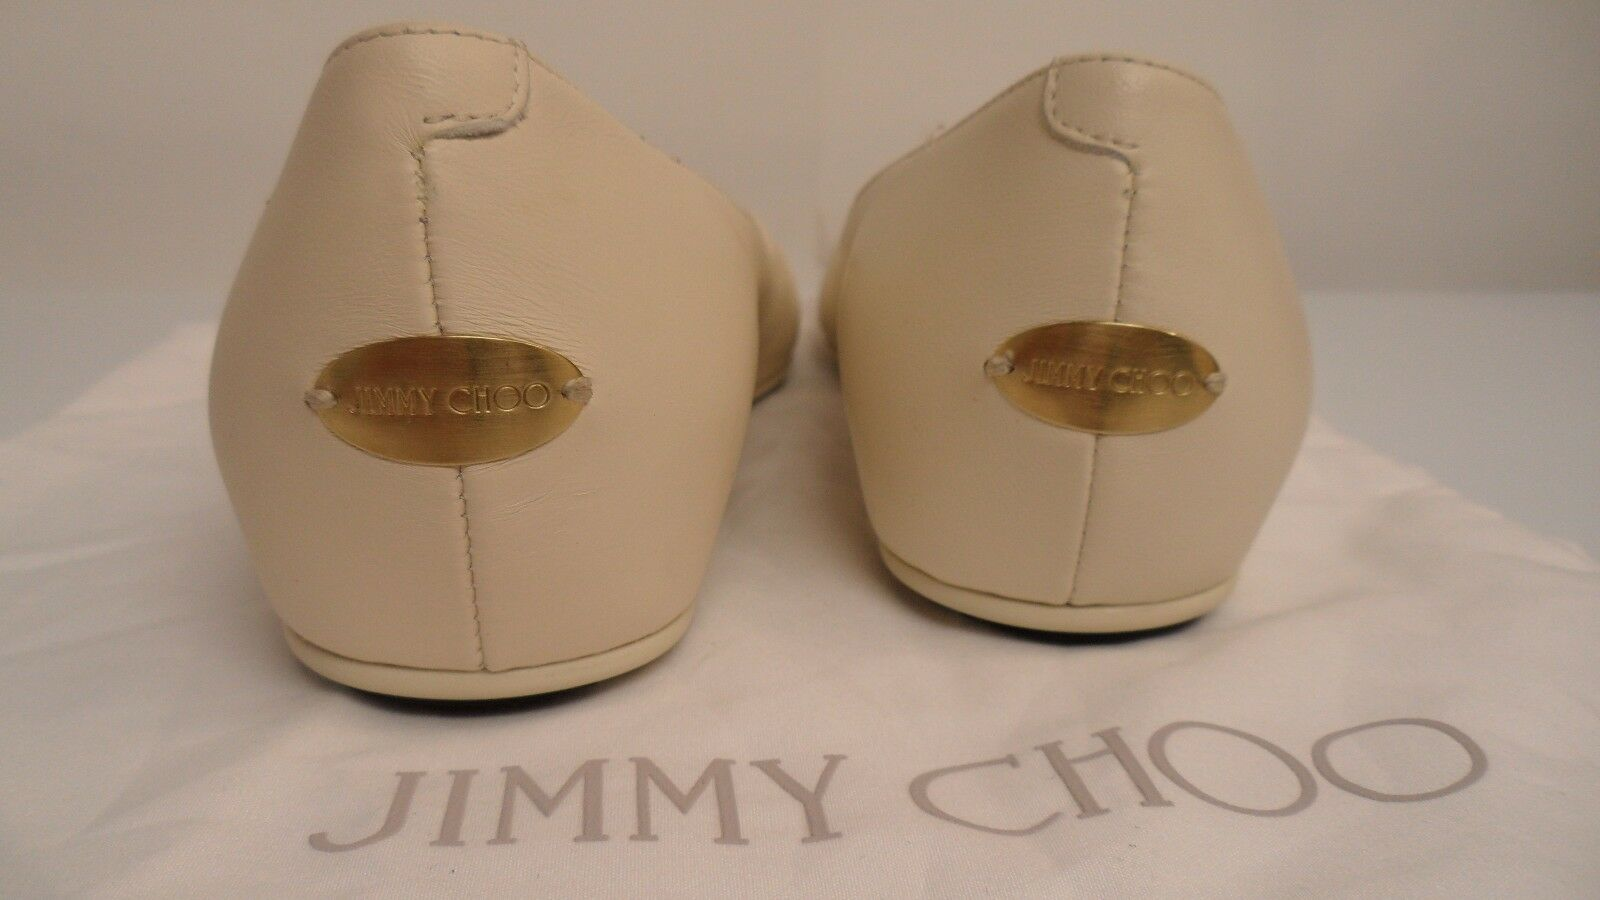 Jimmy Choo Waine Off Weiß Chainmail-Paneled  9 Leder Flats Left Sz 9  Right 9.5 a9e317